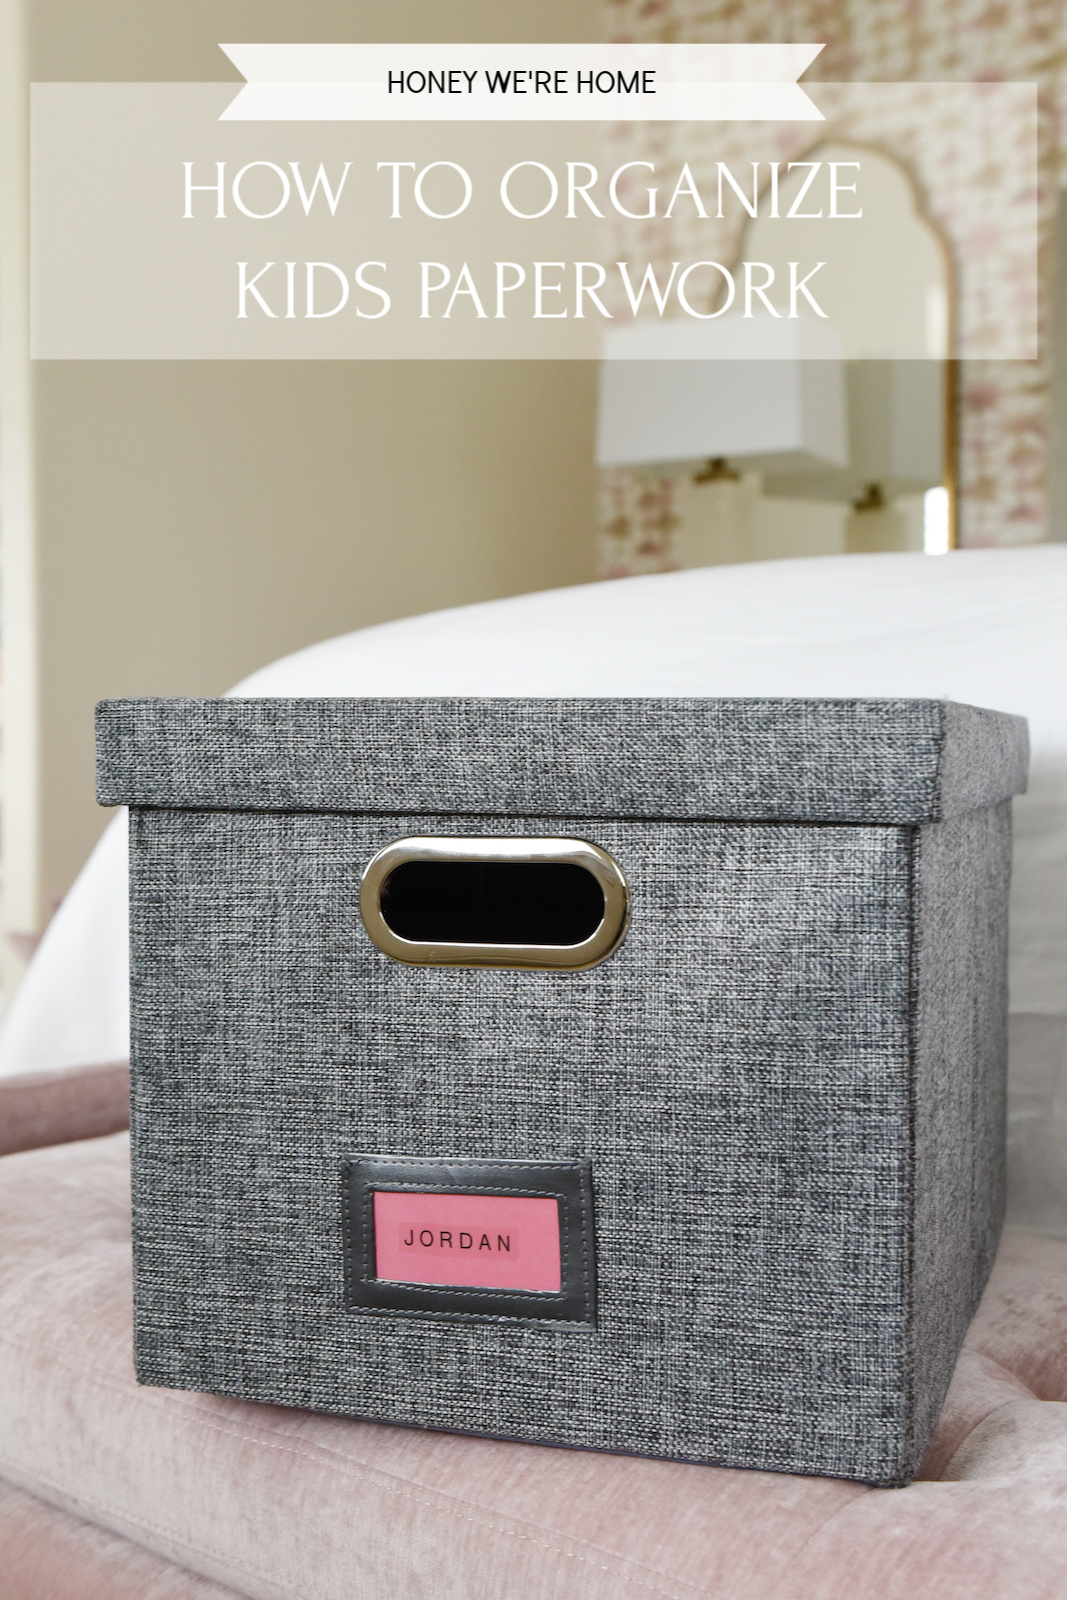 How to Organize Kids Paperwork